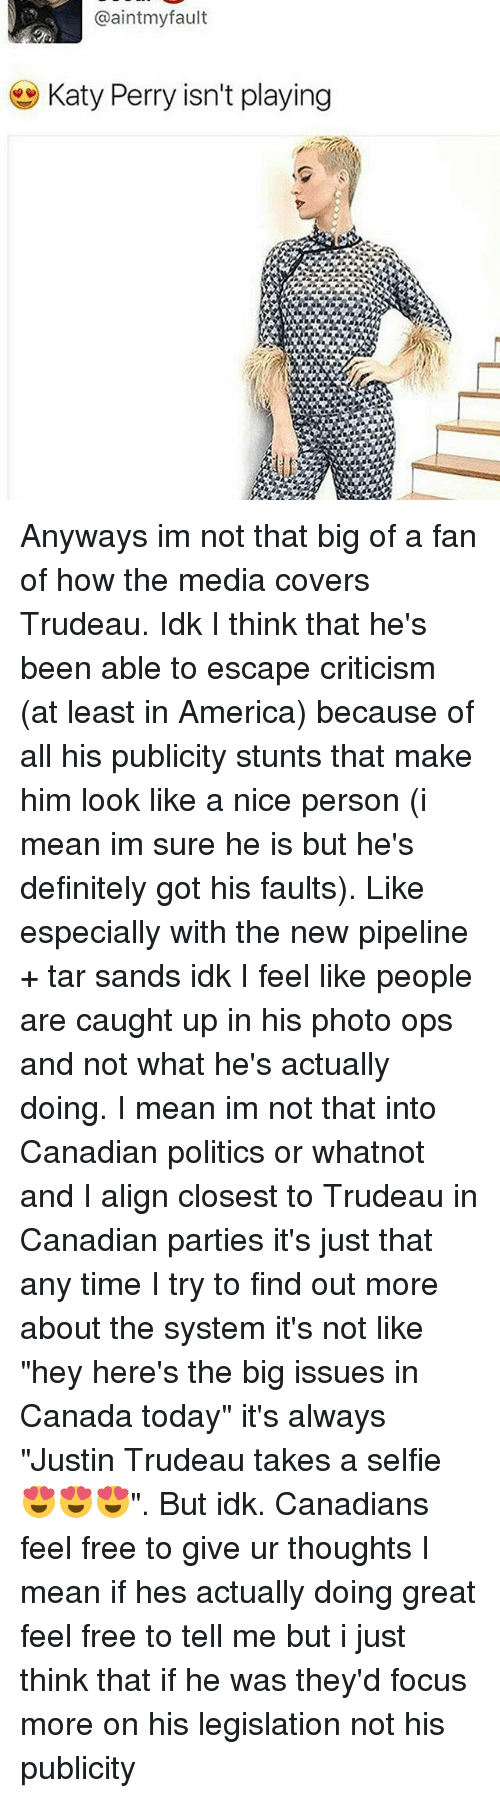 """Alignments: @aintmyfault  Katy Perry isn't playing Anyways im not that big of a fan of how the media covers Trudeau. Idk I think that he's been able to escape criticism (at least in America) because of all his publicity stunts that make him look like a nice person (i mean im sure he is but he's definitely got his faults). Like especially with the new pipeline + tar sands idk I feel like people are caught up in his photo ops and not what he's actually doing. I mean im not that into Canadian politics or whatnot and I align closest to Trudeau in Canadian parties it's just that any time I try to find out more about the system it's not like """"hey here's the big issues in Canada today"""" it's always """"Justin Trudeau takes a selfie 😍😍😍"""". But idk. Canadians feel free to give ur thoughts I mean if hes actually doing great feel free to tell me but i just think that if he was they'd focus more on his legislation not his publicity"""